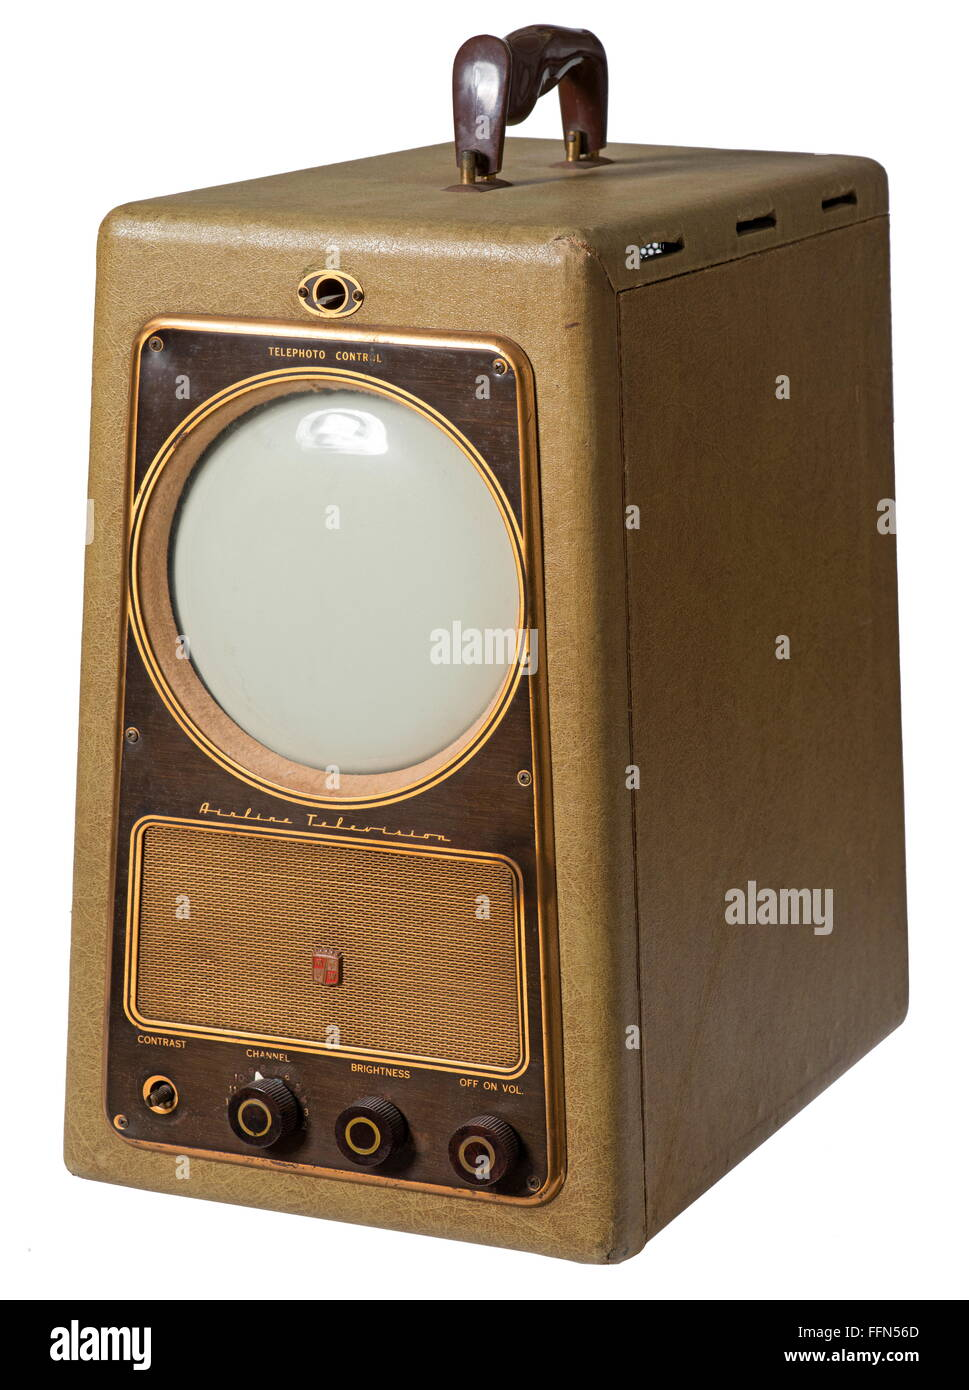 Broadcast Television Airline Television Version 94gse 3015a Stock